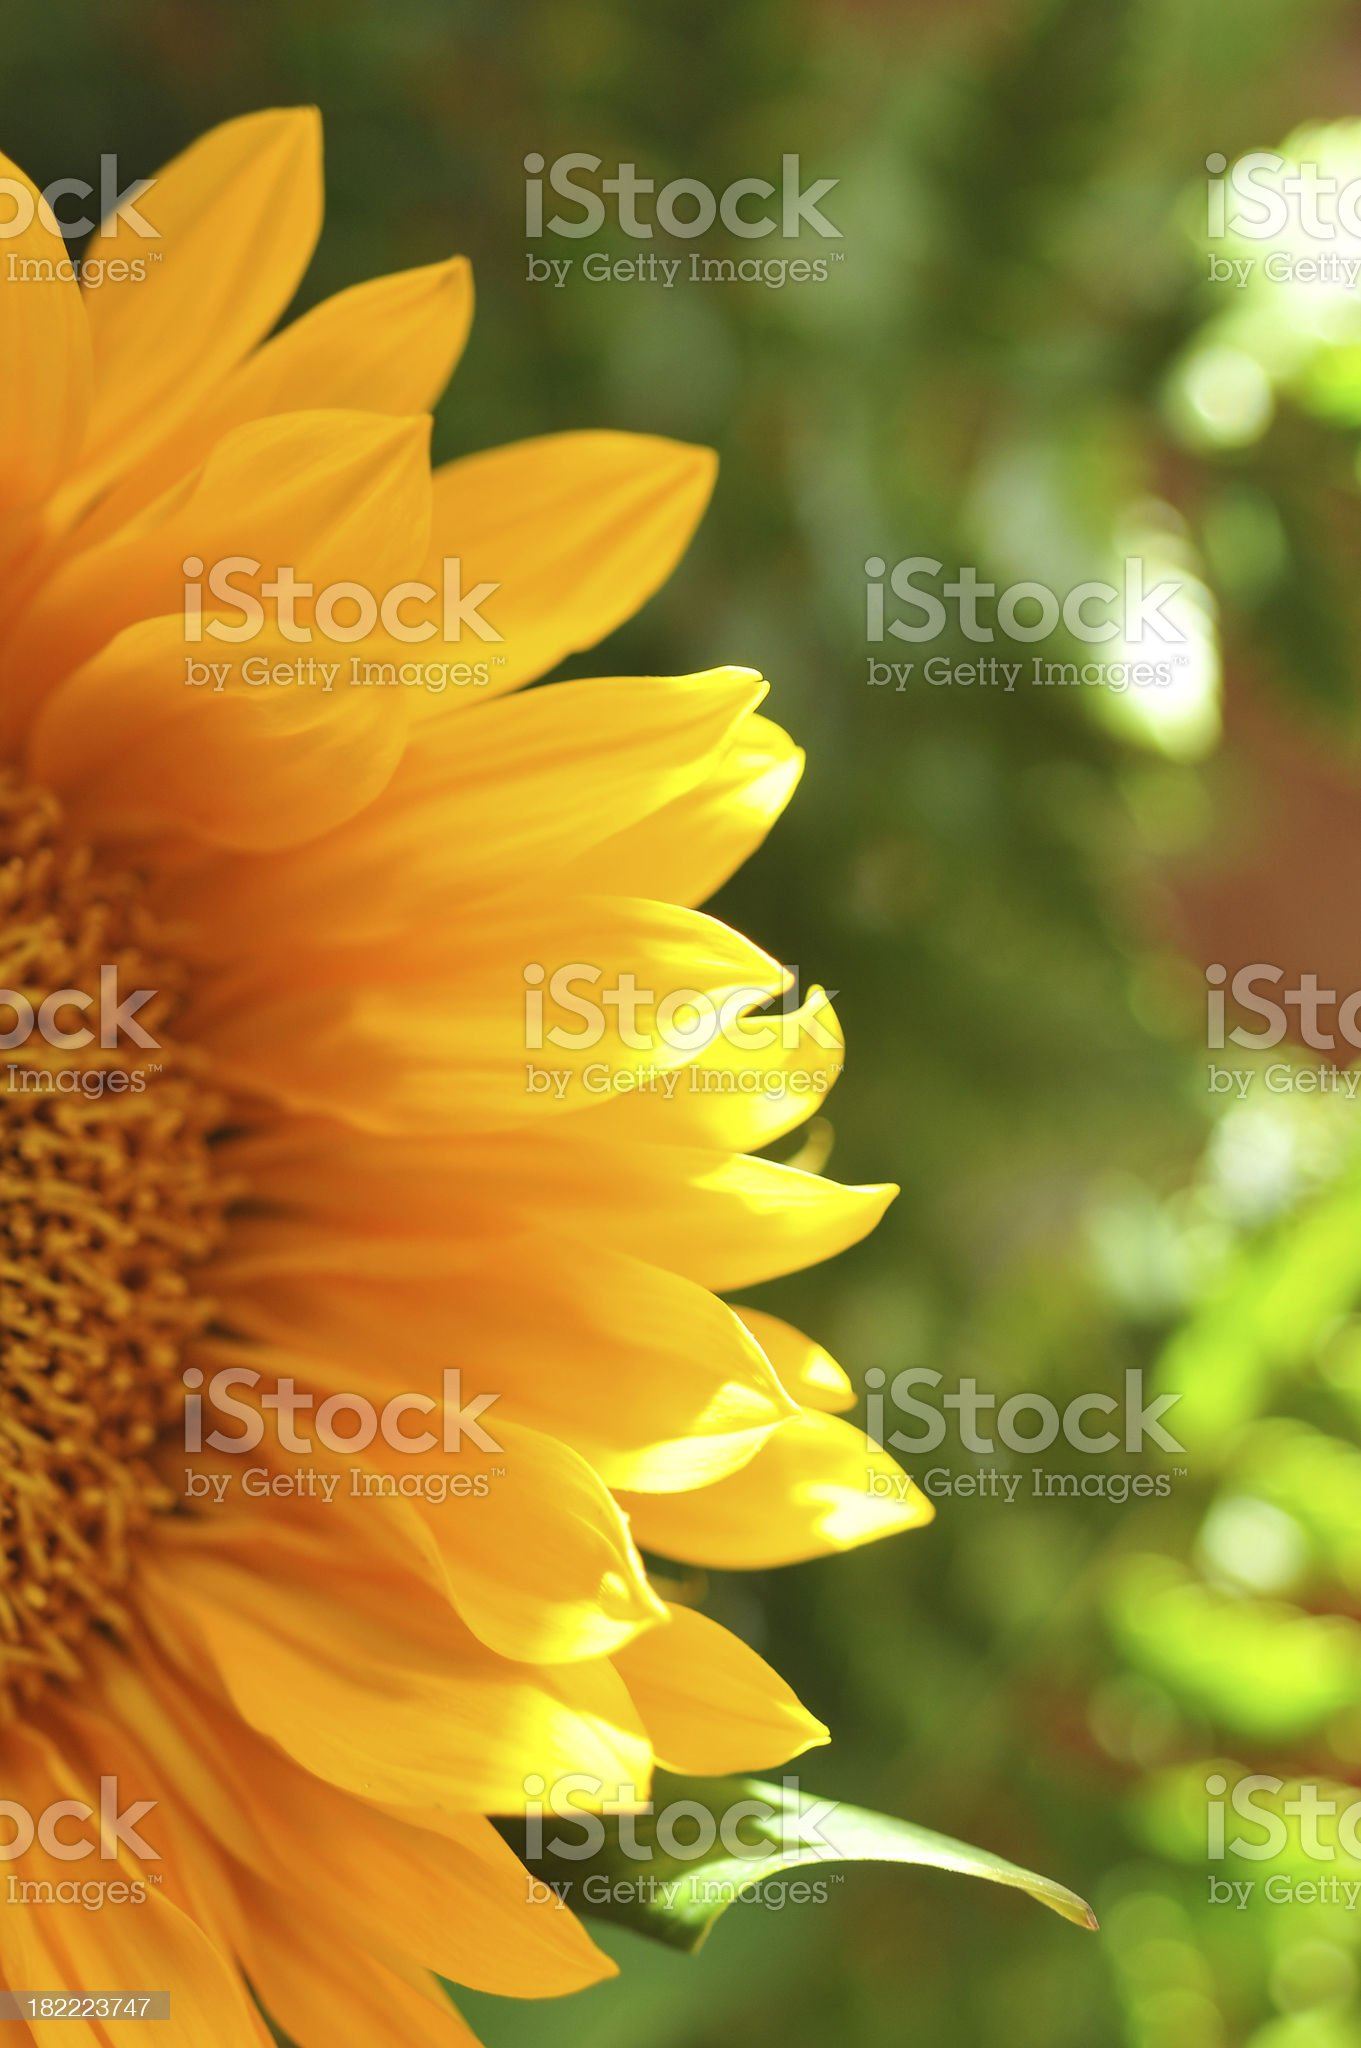 Glowing Sunflower royalty-free stock photo